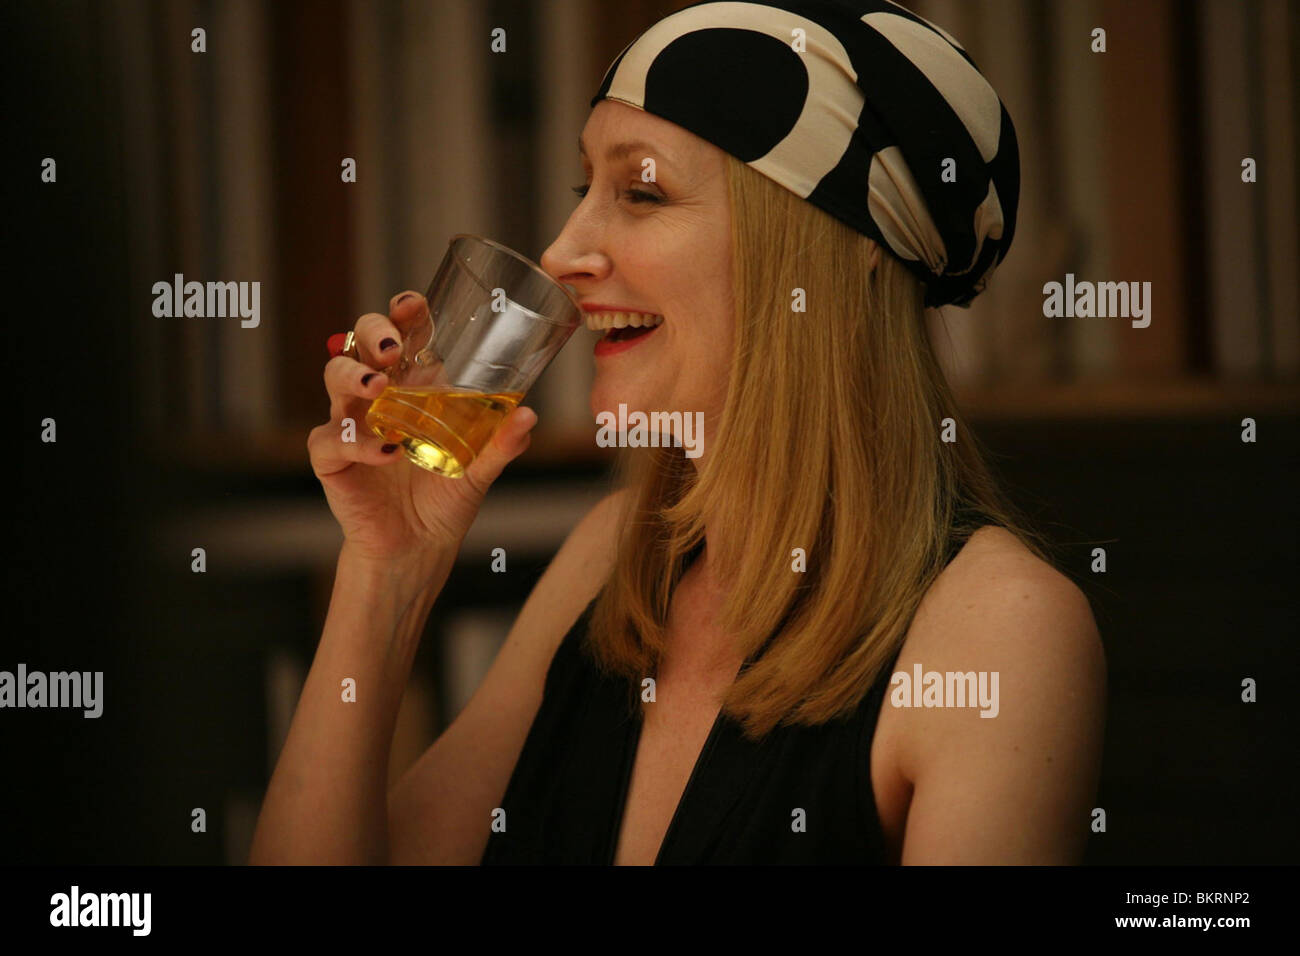 WHATEVER WORKS (2009) PATRICIA CLARKSON WOODY ALLEN (DIR) 007 - Stock Image